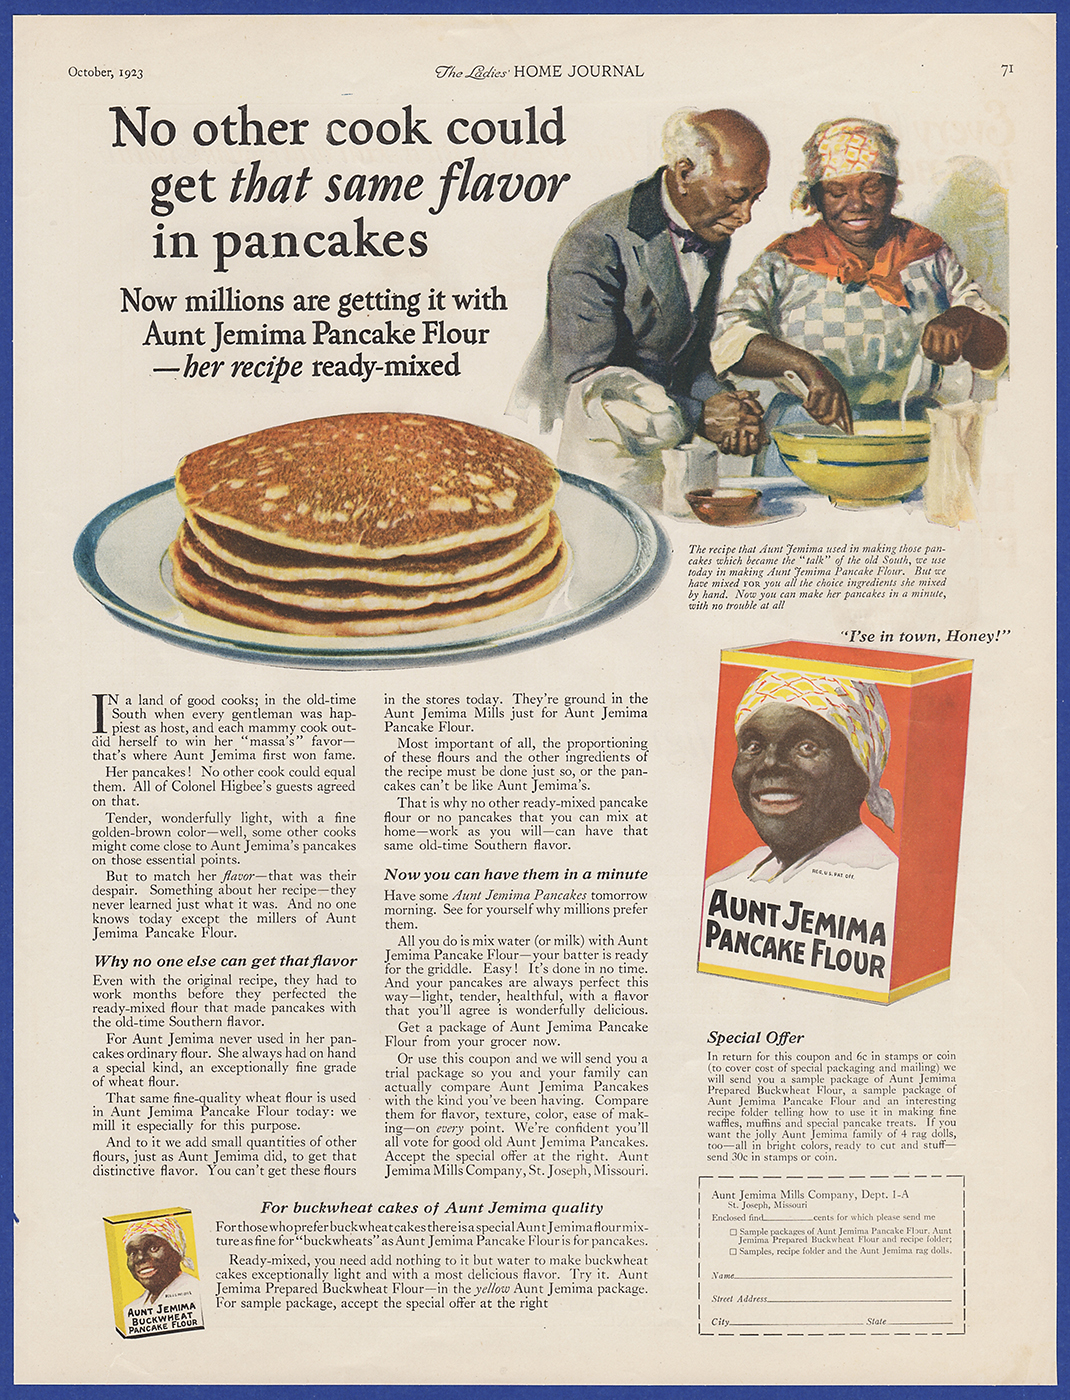 Vintage 1923 aunt jemima pancake flour kitchen art decor print ad i combine shipping at no extra charge add 3 or more print ads to the cart and receive free shipping at checkout ccuart Gallery